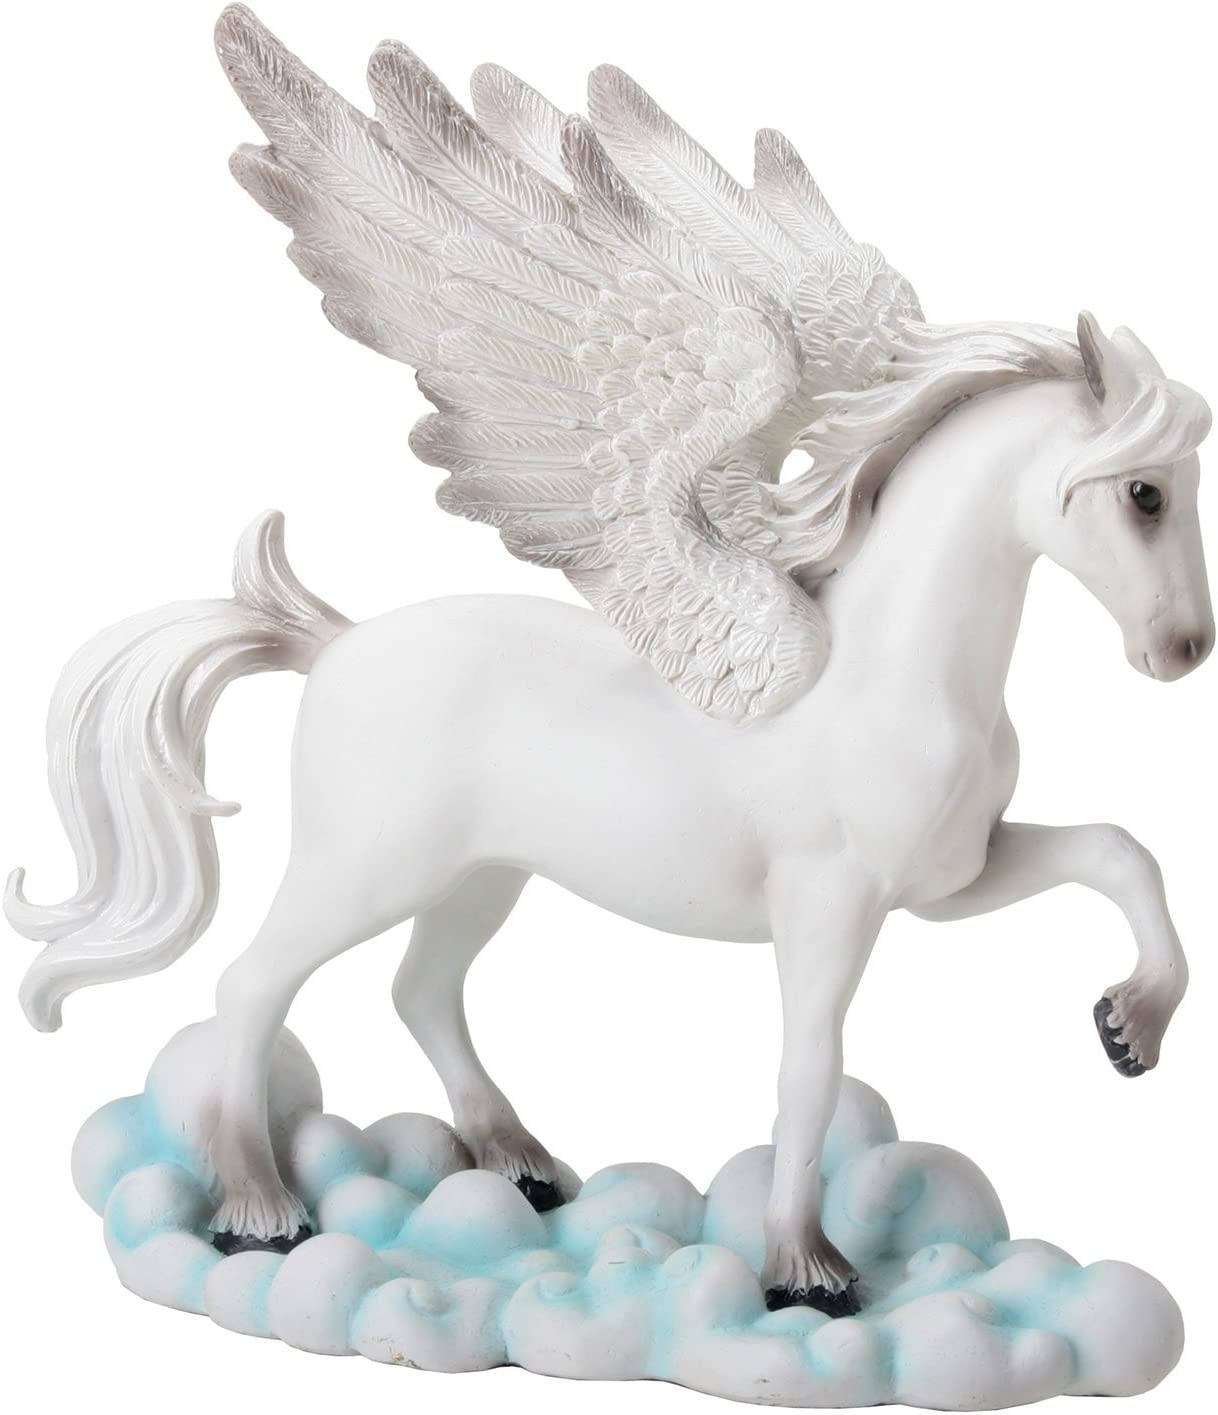 YTC White Tone Pegasus Horse with Wings Standing on Clouds Statue Display